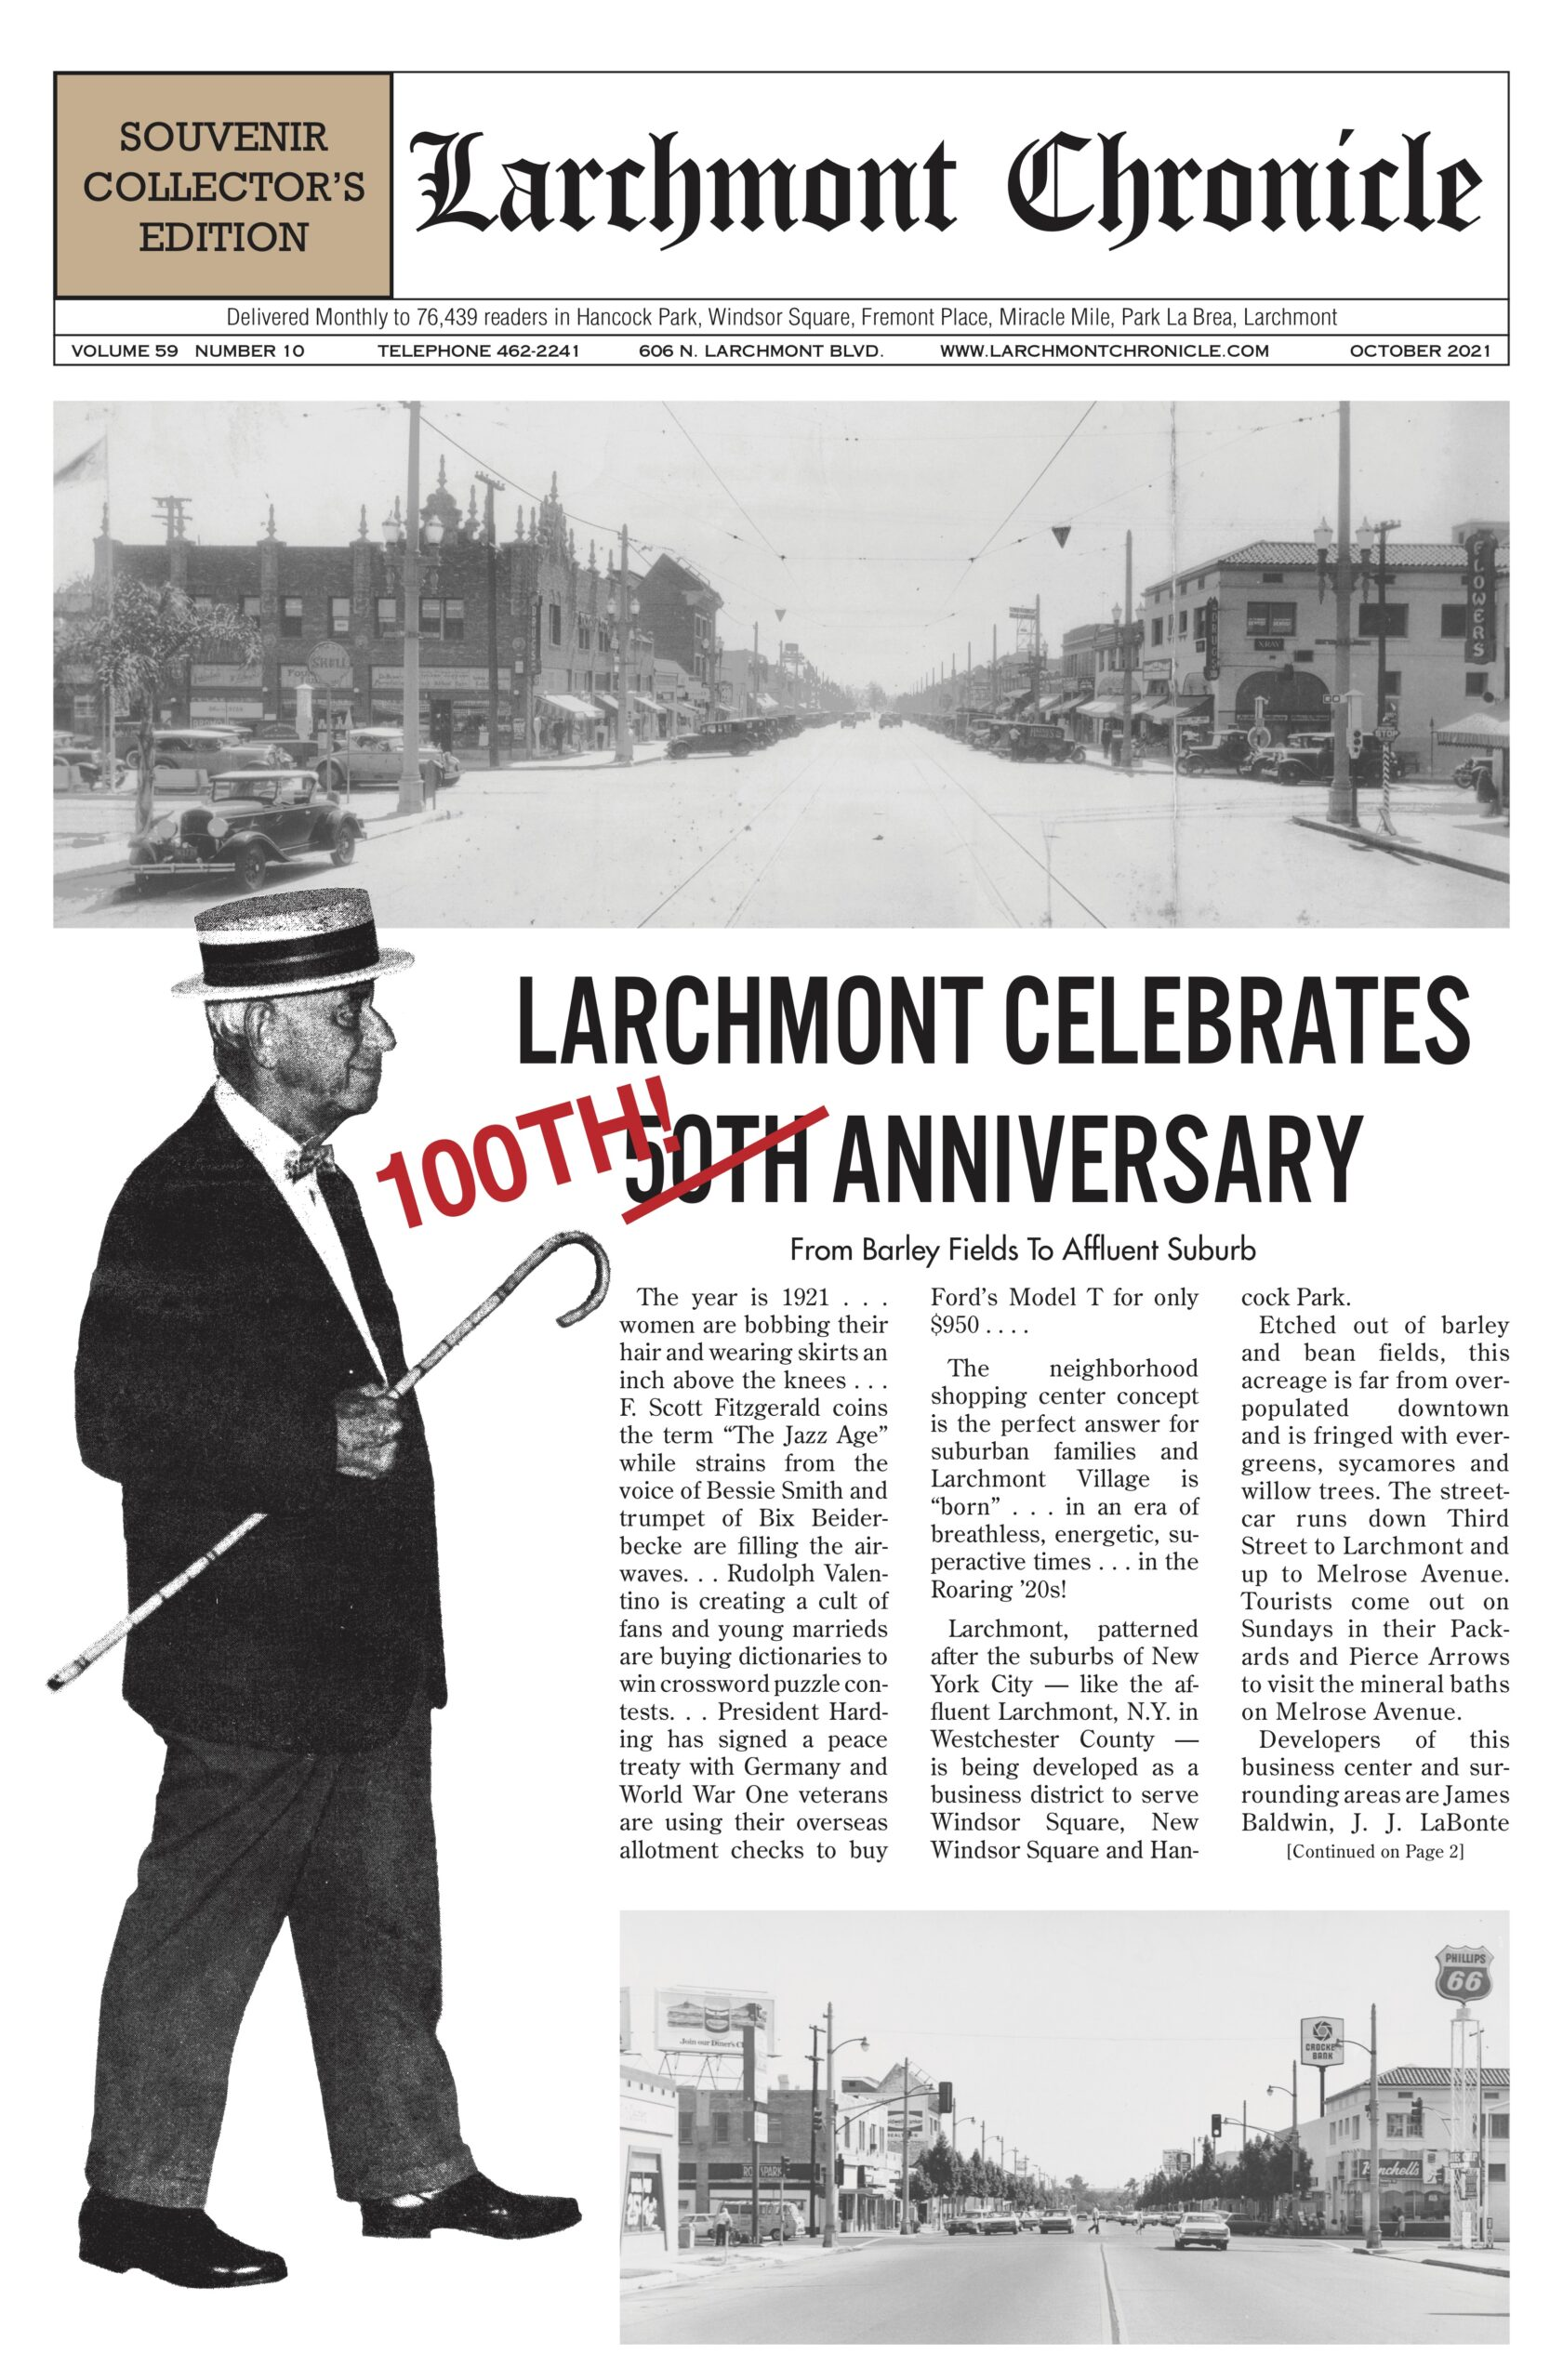 Larchmont Chronicle October 2021 full issue